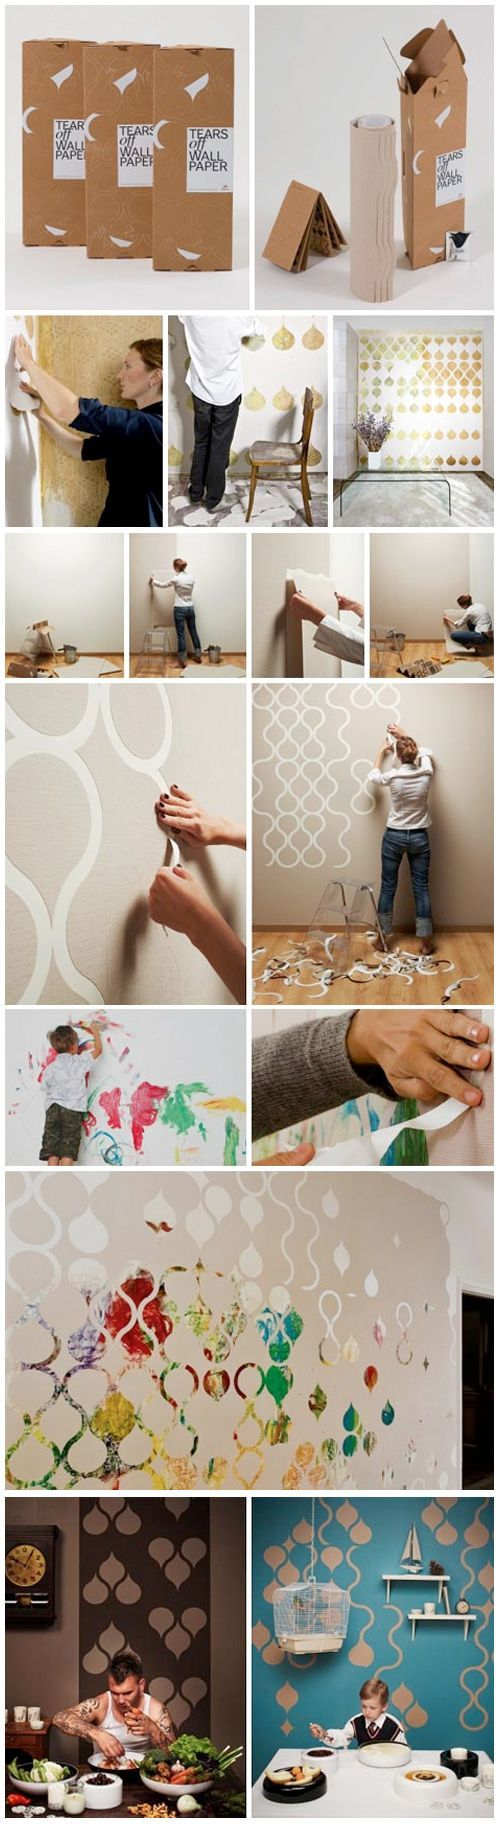 diy wall design, bathroom: